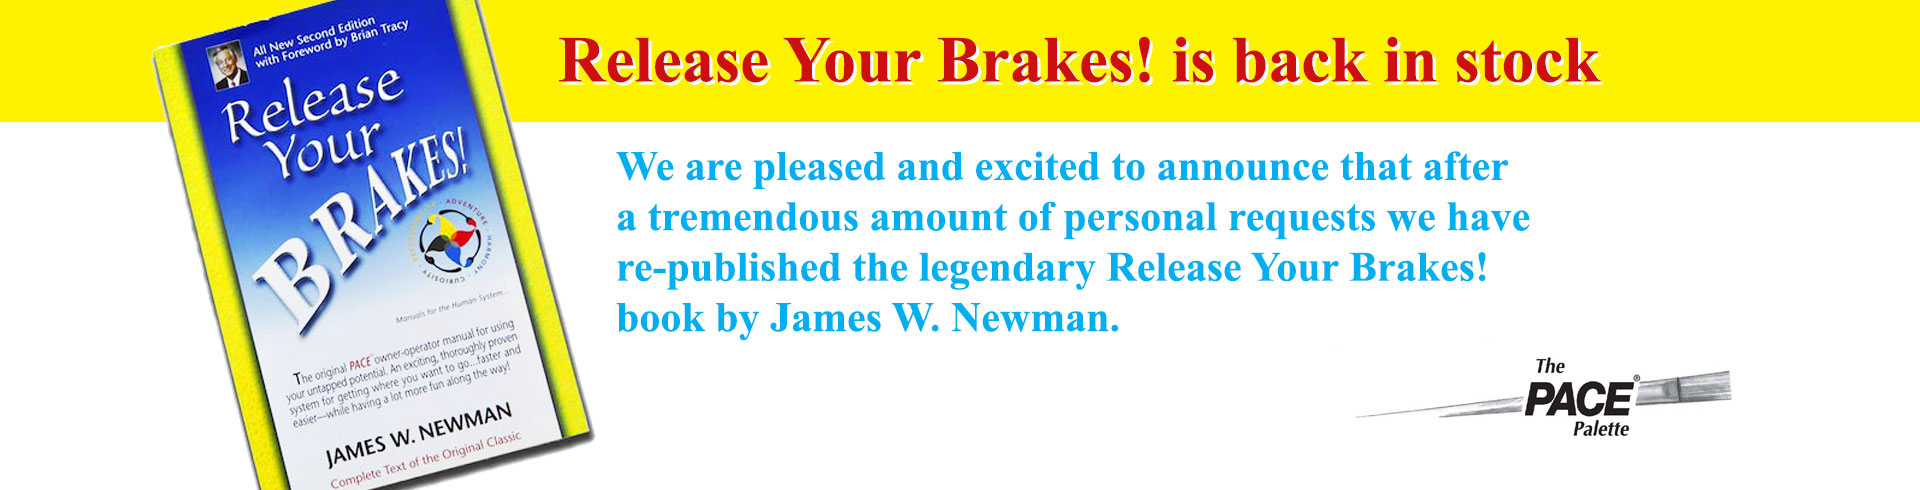 release your brakes book